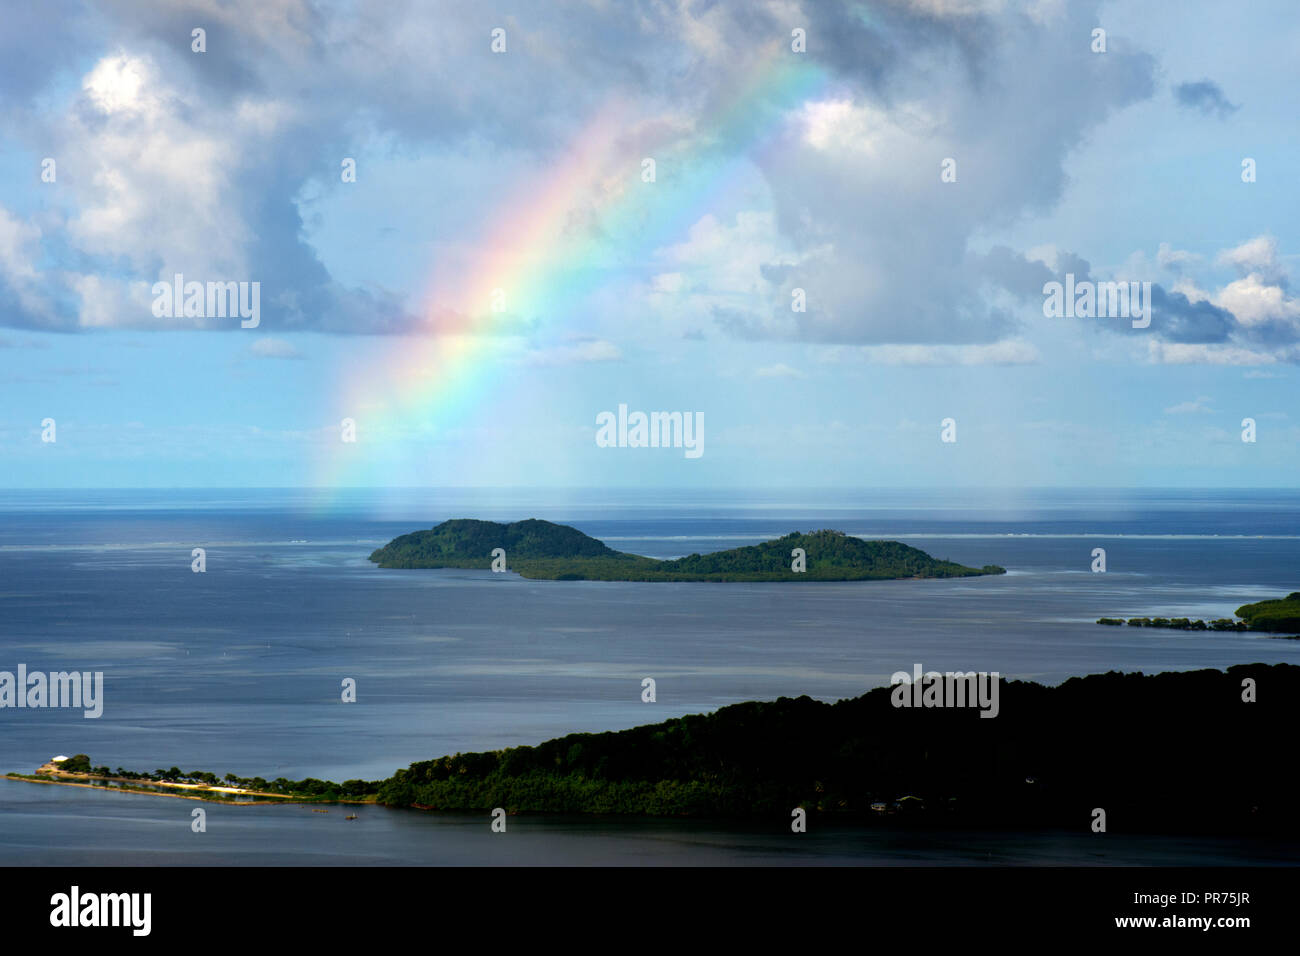 Aerial view of the lagoon of Pohnpei with a rainbow, Federated States of Micronesia - Stock Image